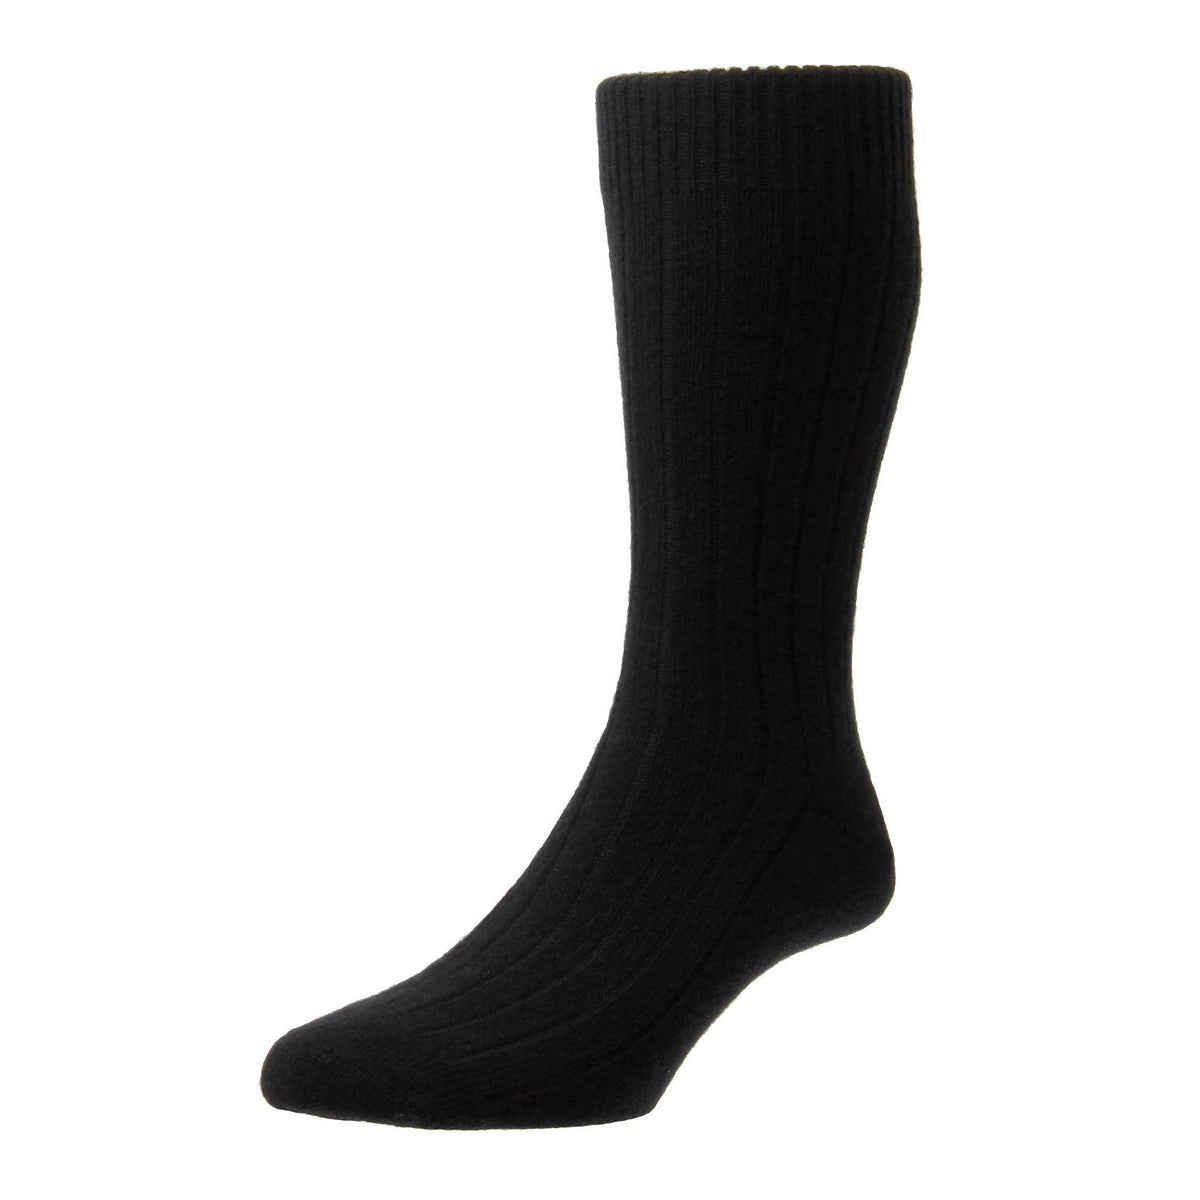 Black | Mens Cashmere Socks | Made in England | Calf Length Sock | buy now at The Cashmere Choice London